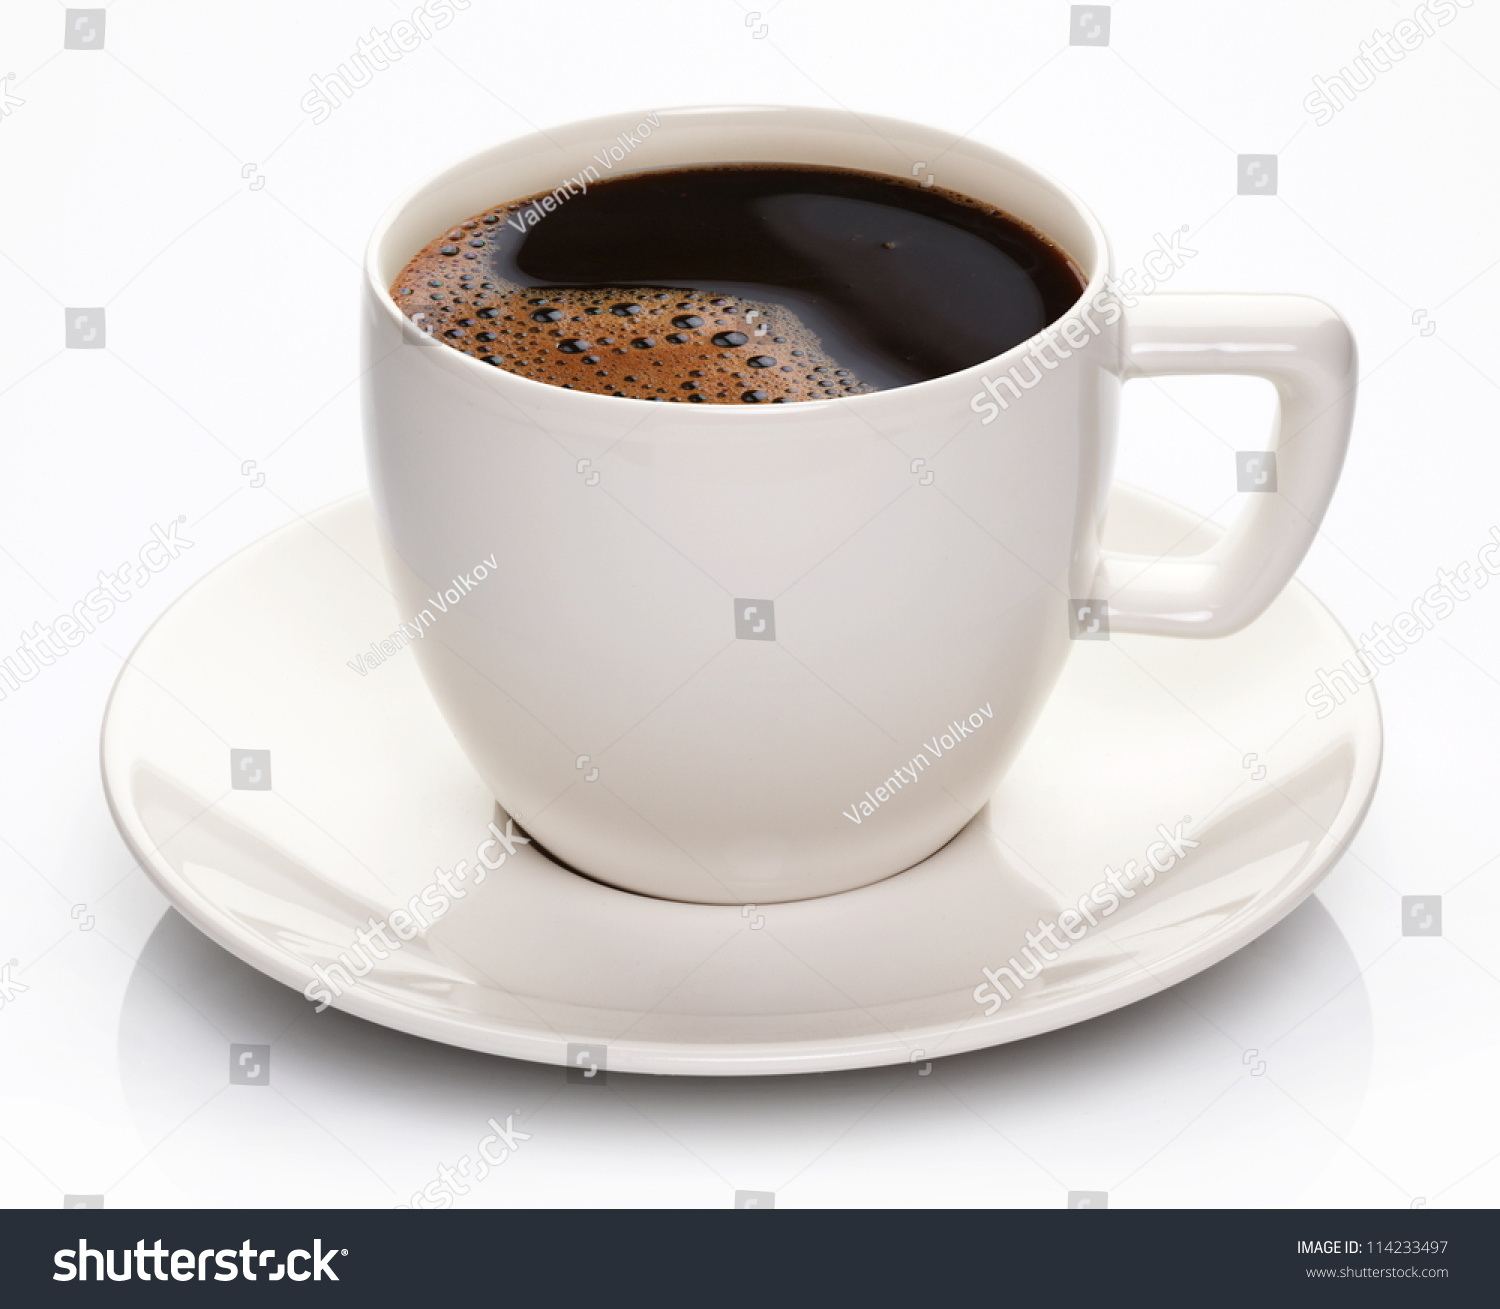 coffee cup saucer on white background stock photo 114233497 shutterstock. Black Bedroom Furniture Sets. Home Design Ideas